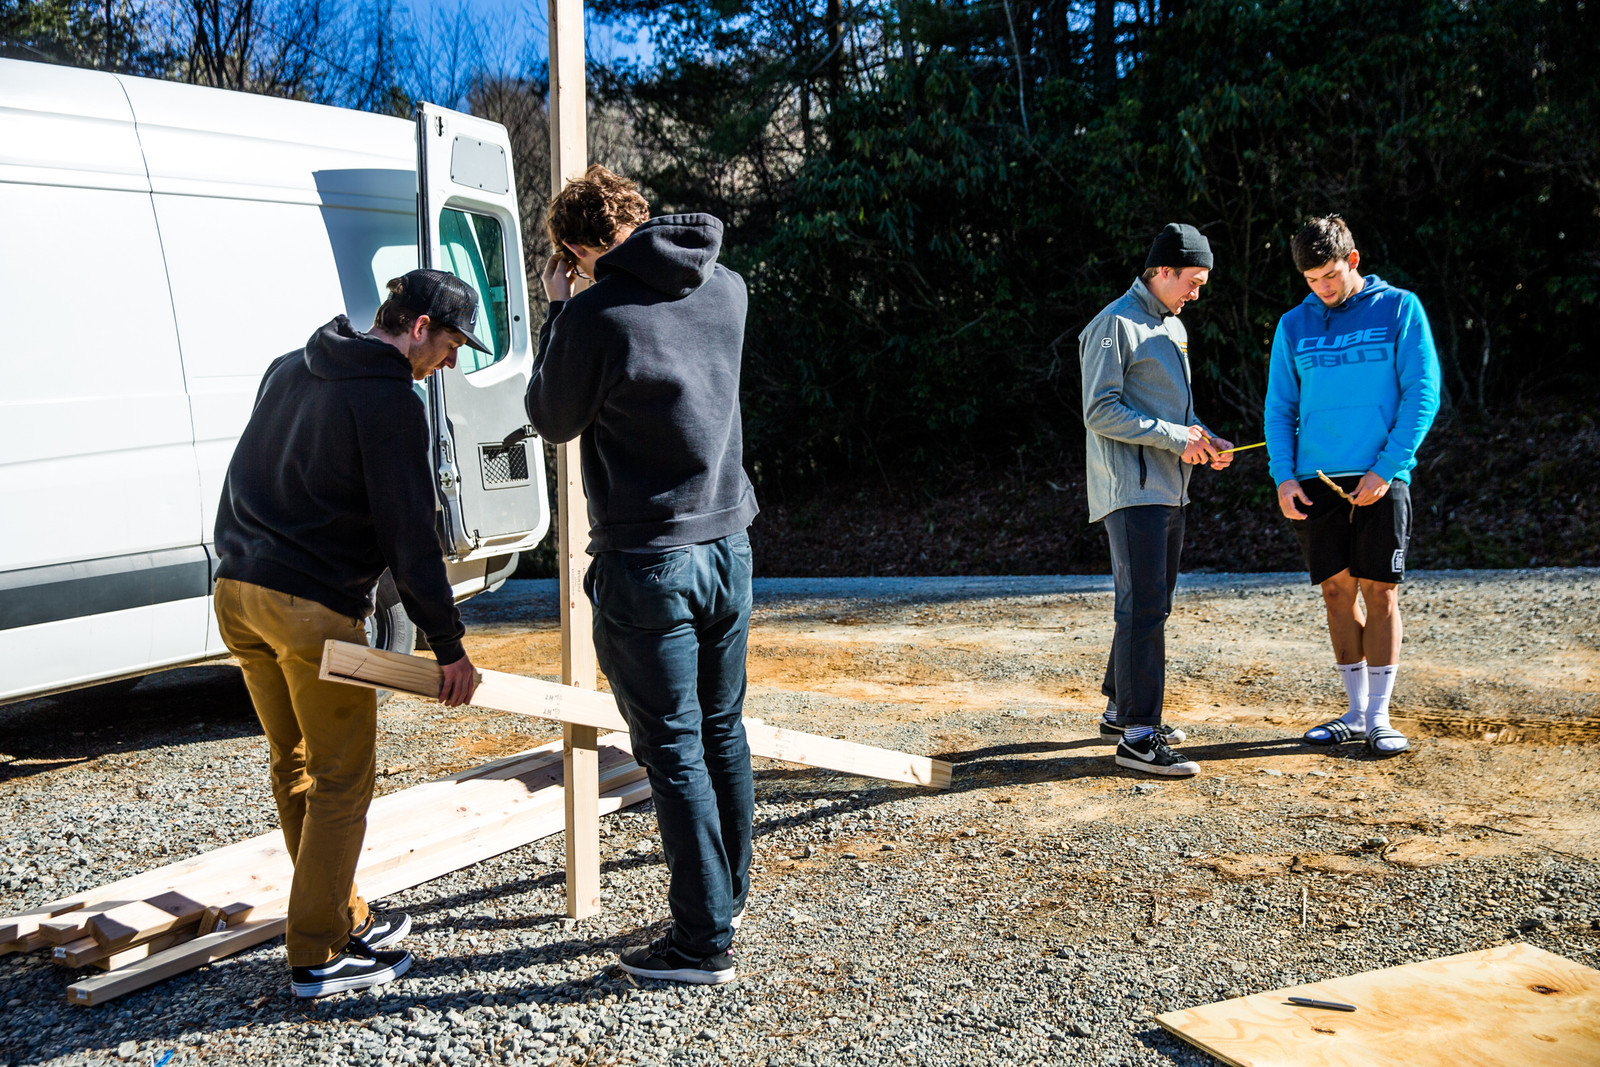 The day before the race, the local band of World Cup riders were tasked with building two ramps for loading and unloading the shuttle bus. It quickly turned into a competition: Max Morgan and Kiran McKinnon vs. Charlie Harrison and Greg Williamson.